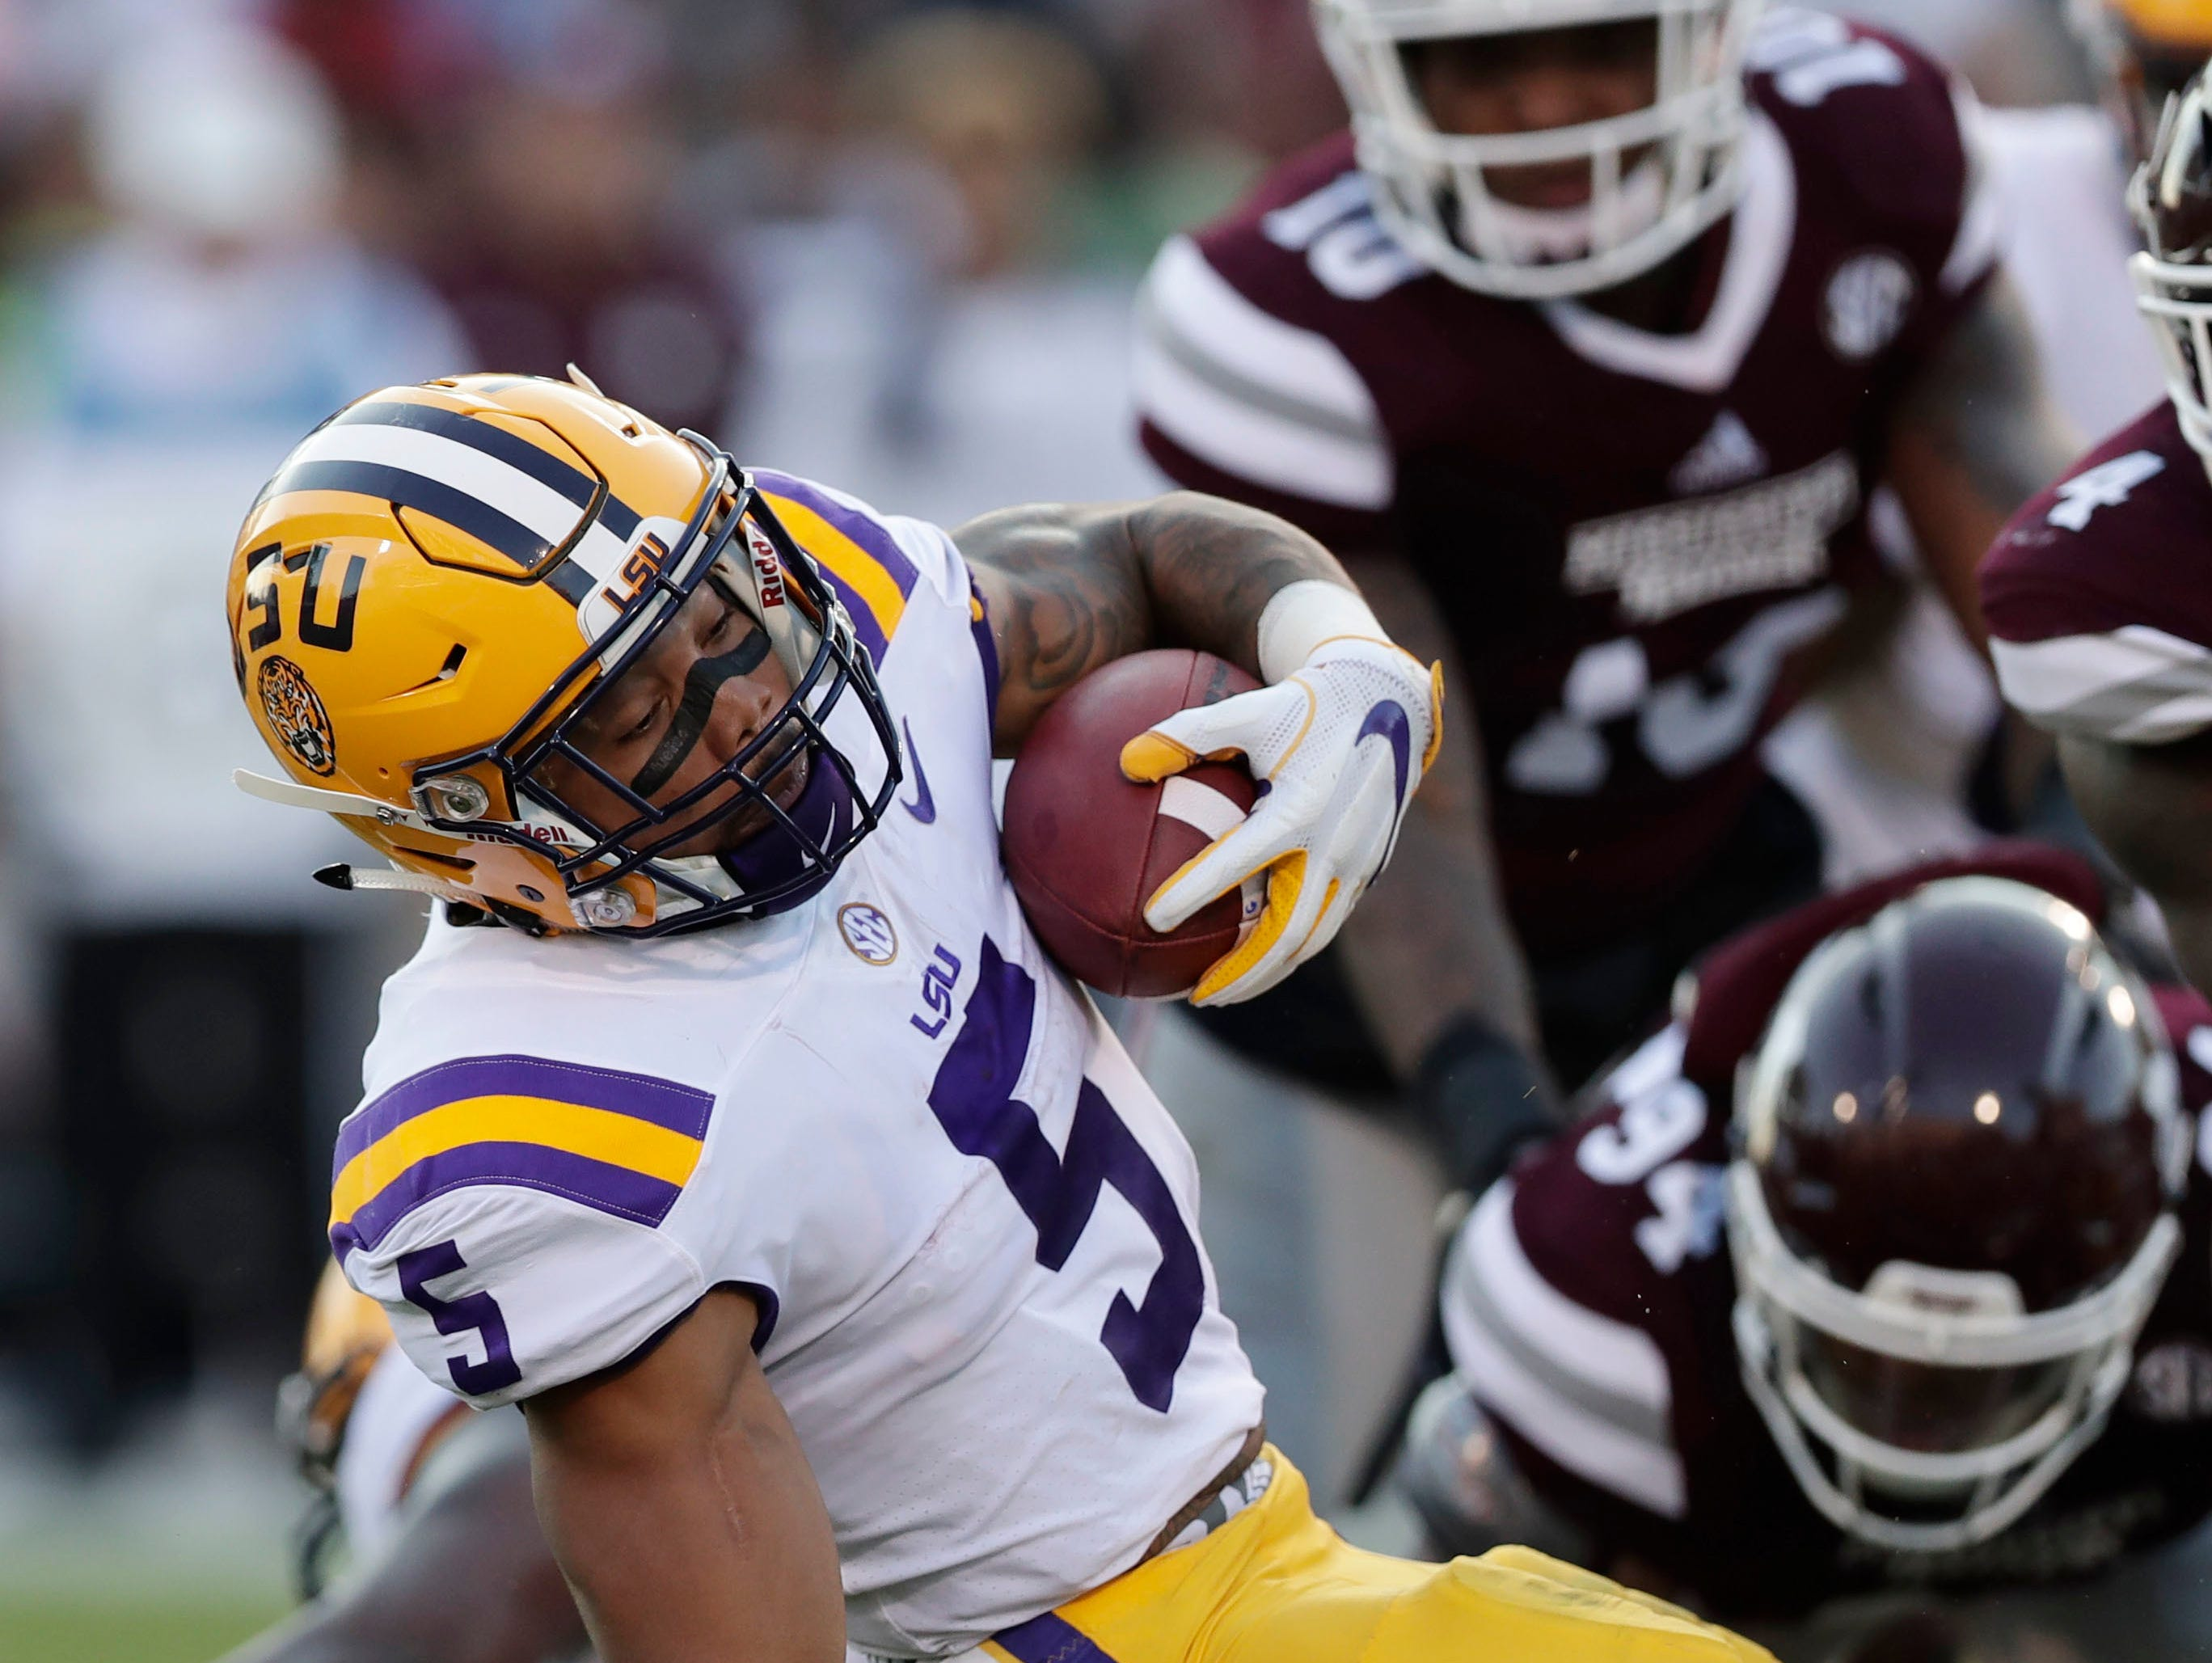 LSU running back Derrius Guice (5) is tackled by Mississippi State defenders during the first half of their NCAA college football game against in Starkville, Miss., Saturday, Sept. 16, 2017.